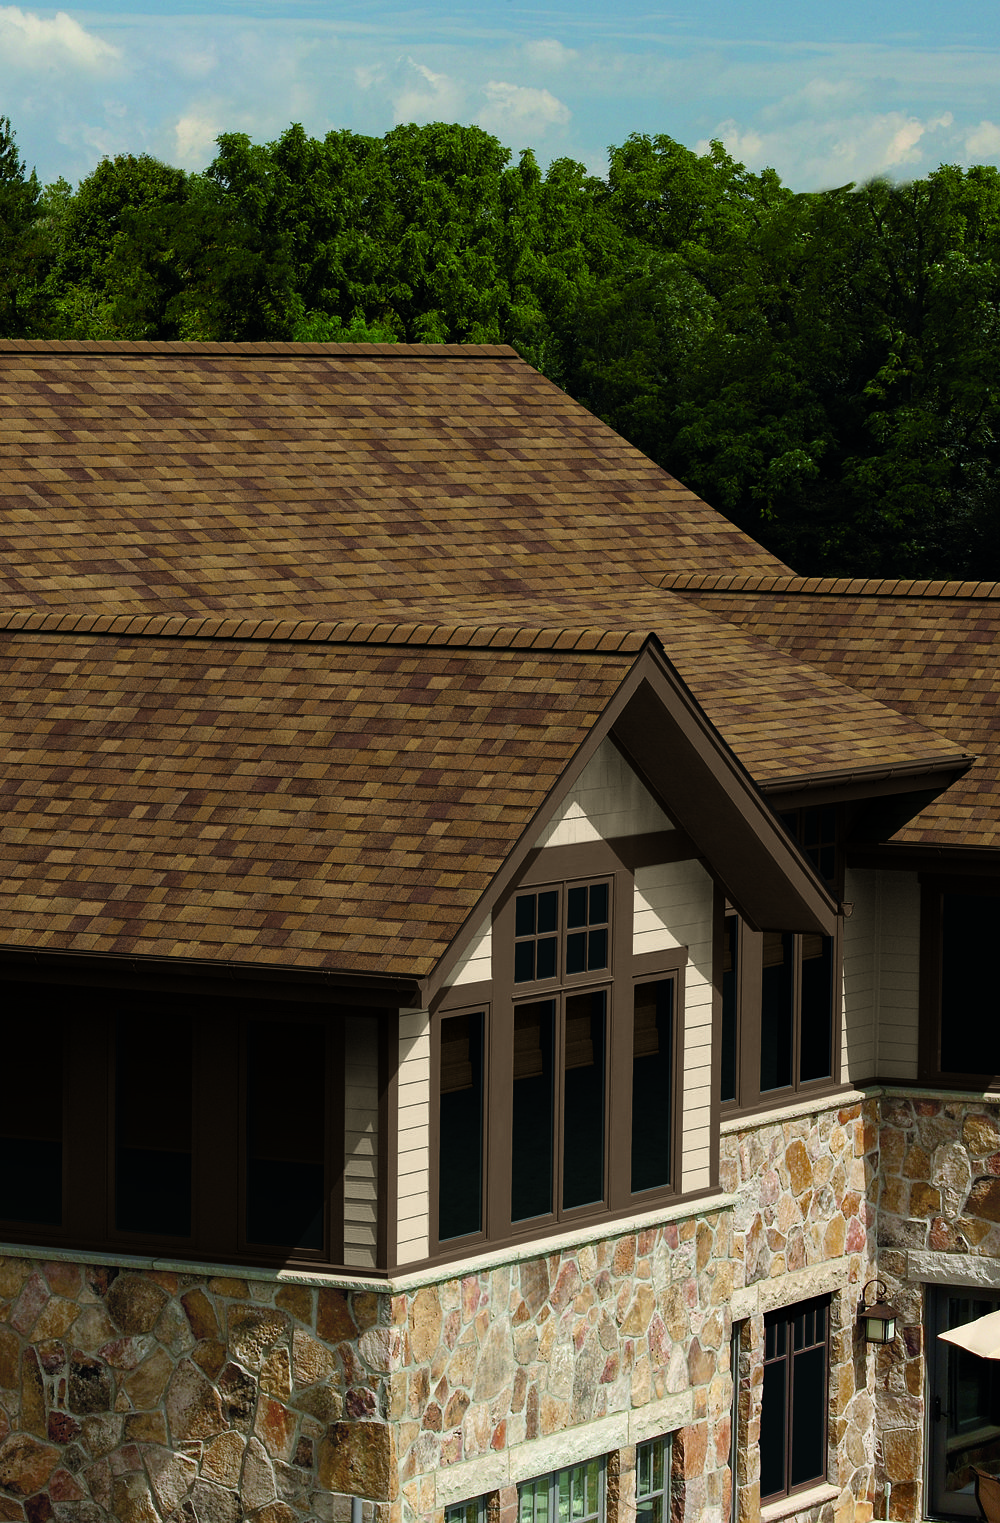 Owens Corning Desert Tan Shingles Shingle Exterior Roofing Diy Roofing